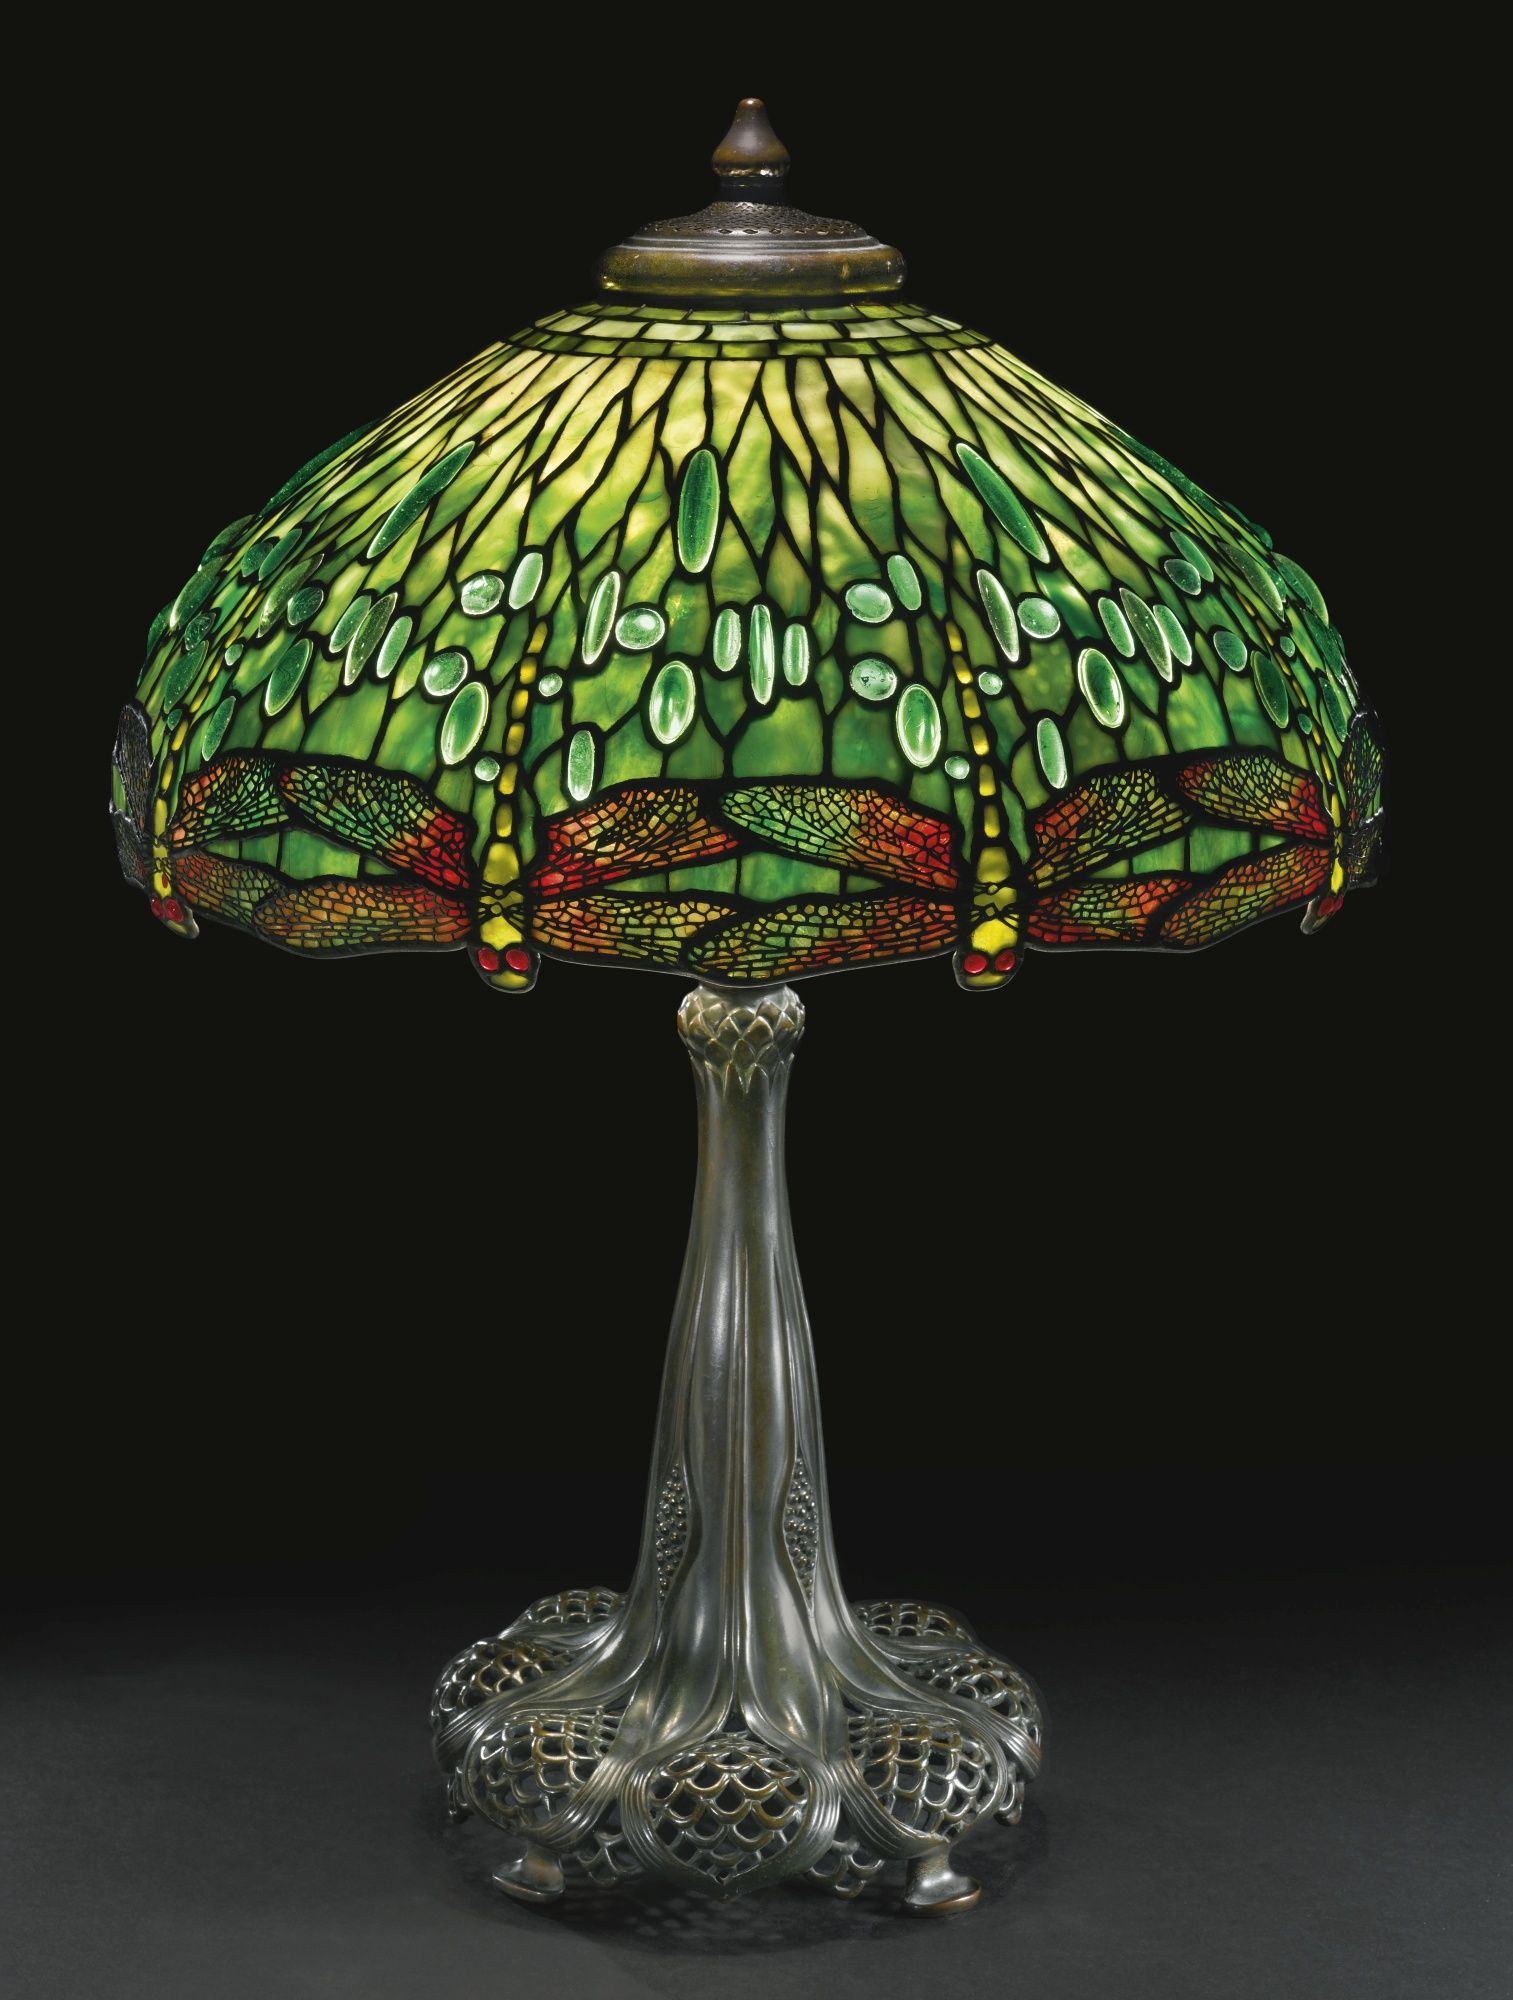 Lampara Tiffany Libelula Lampara De Libelulas Louis Comfort Tiffany Antiques En 2019